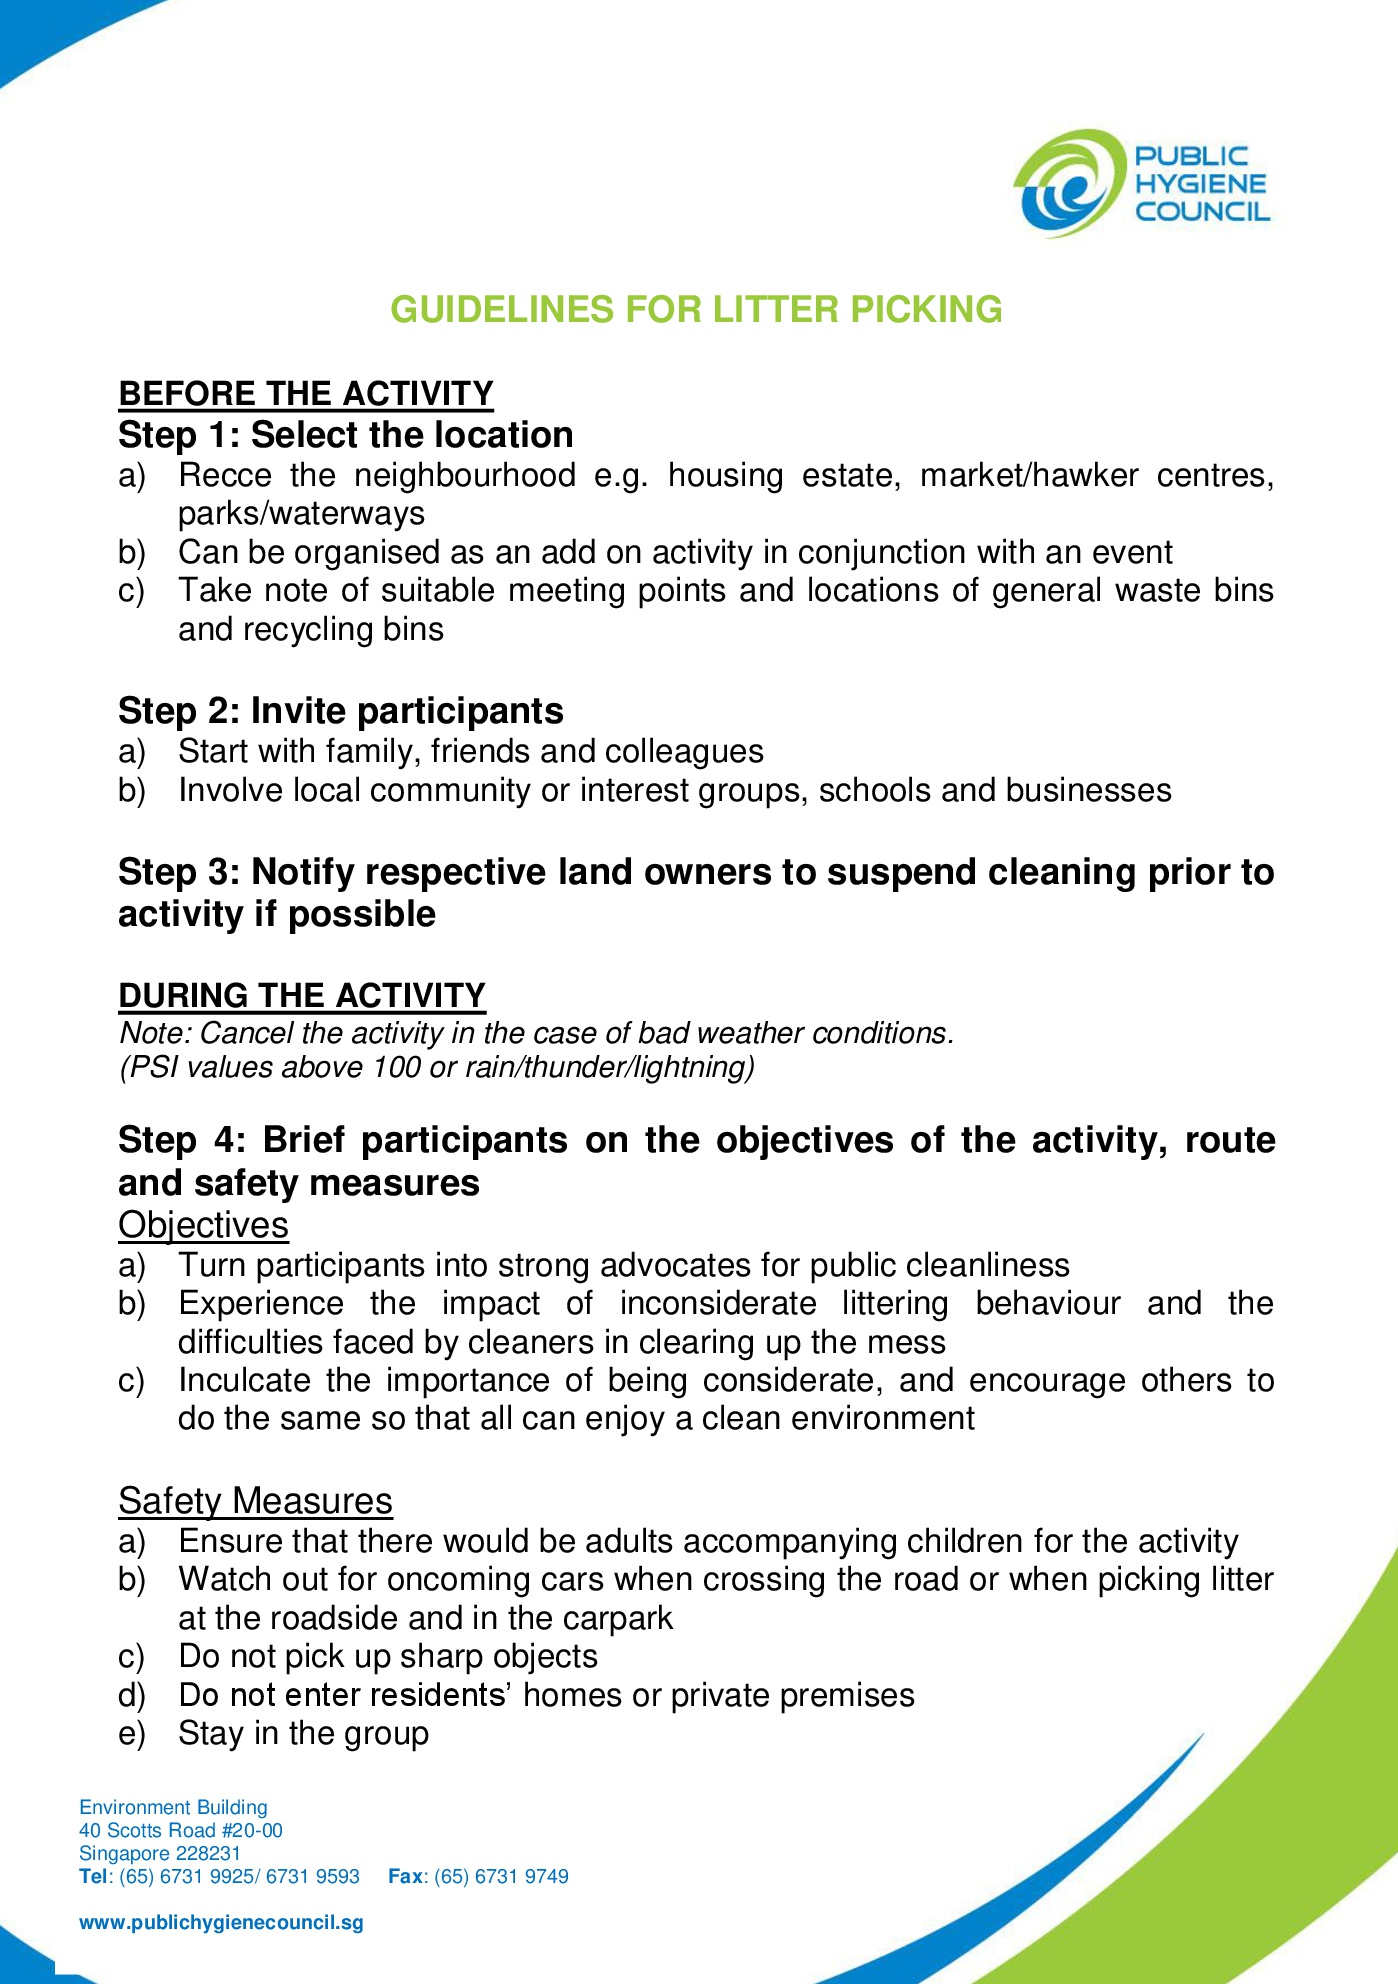 A summarized version of various guidelines for litter picking